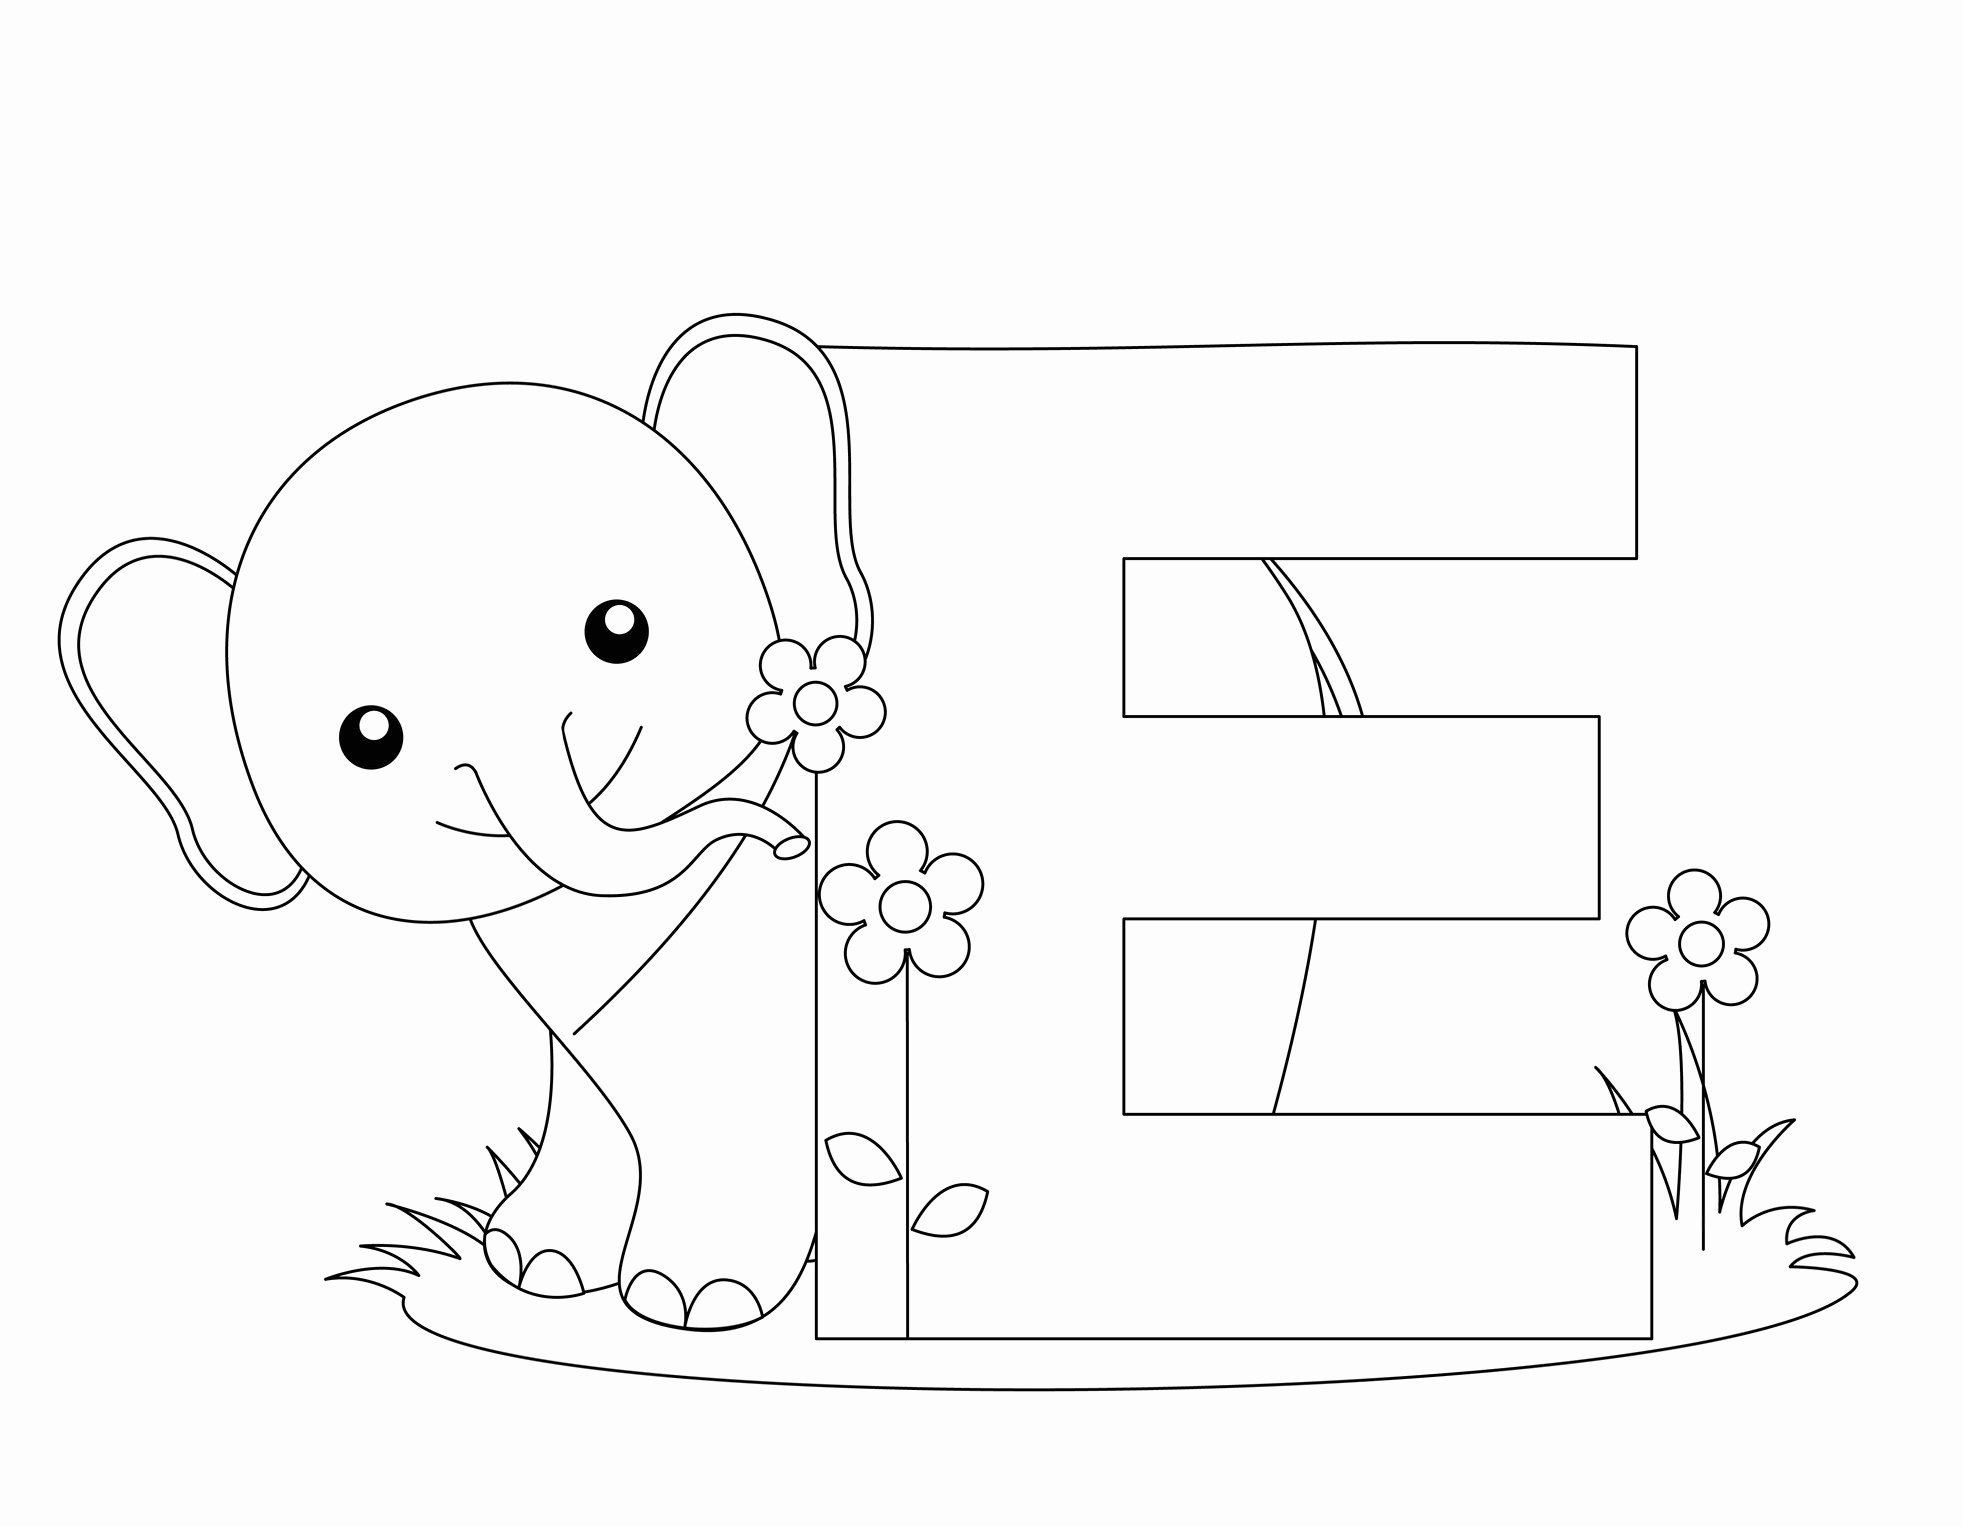 Coloring Page For Kids ~ Alphabet Coloring Pages Letter inside Alphabet Colouring Worksheets For Kindergarten